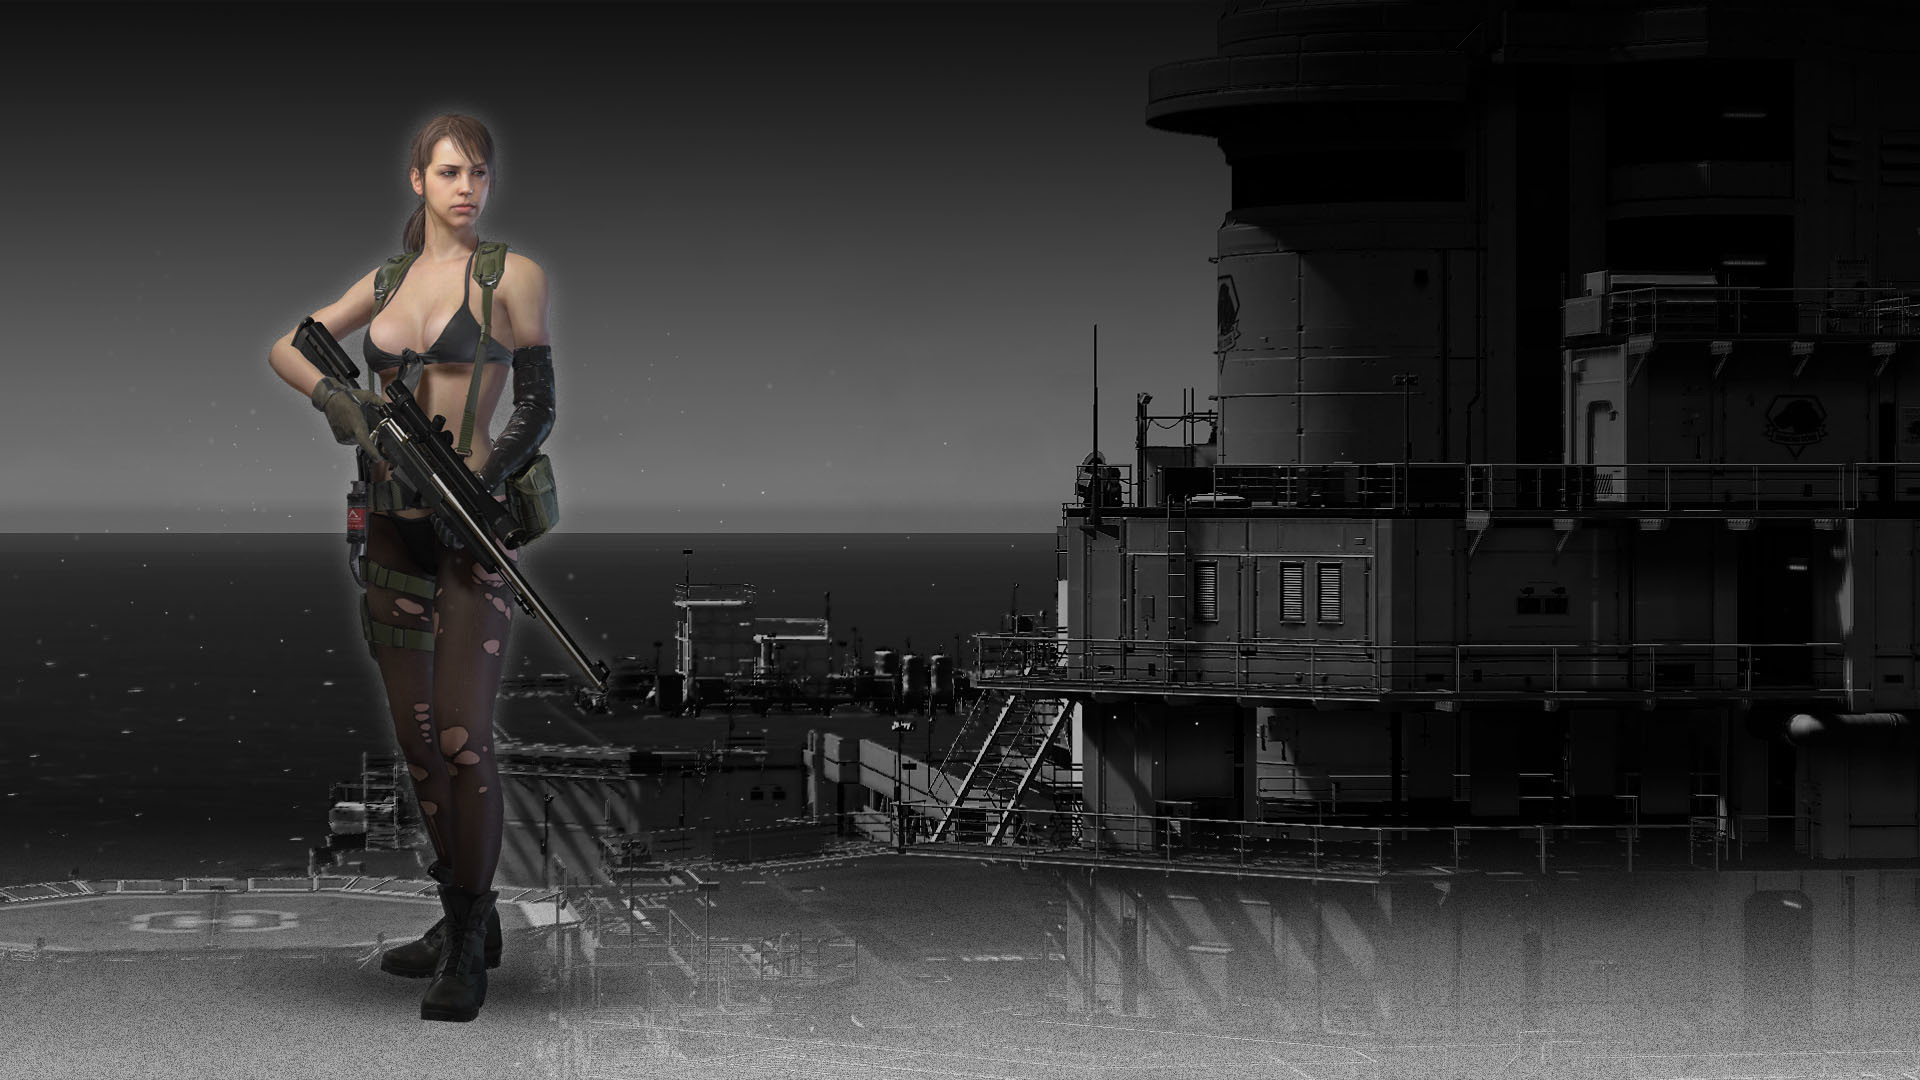 METAL GEAR SOLID V: THE PHANTOM PAIN – Quiet   Steam Trading Cards Wiki    FANDOM powered by Wikia